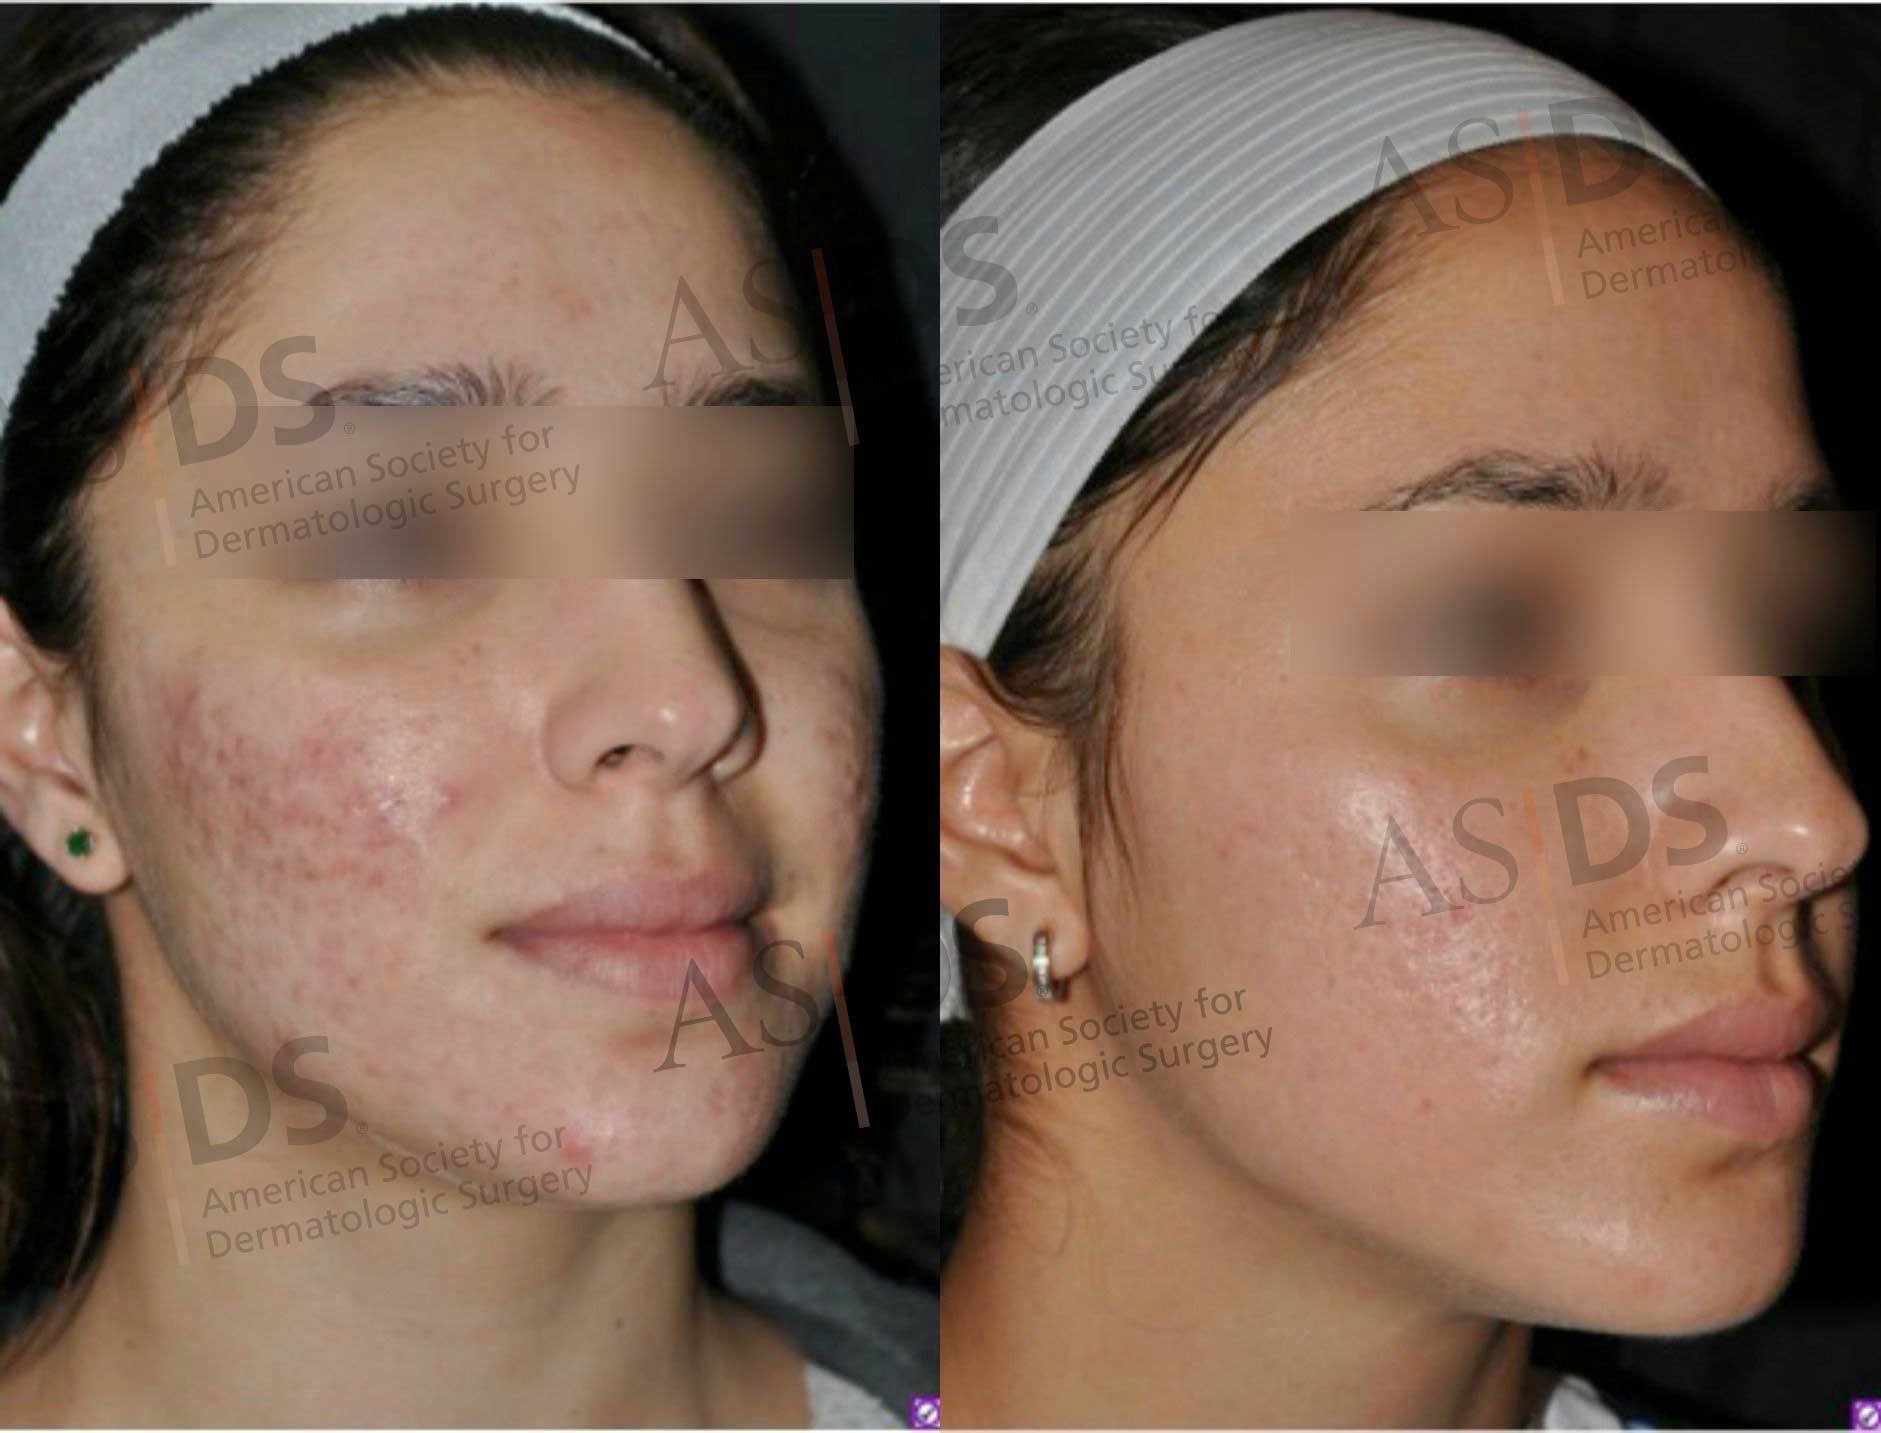 Before (left) and after (right) nonablative fractionated laser resurfacing with pulsed dye laser - Acne scars.